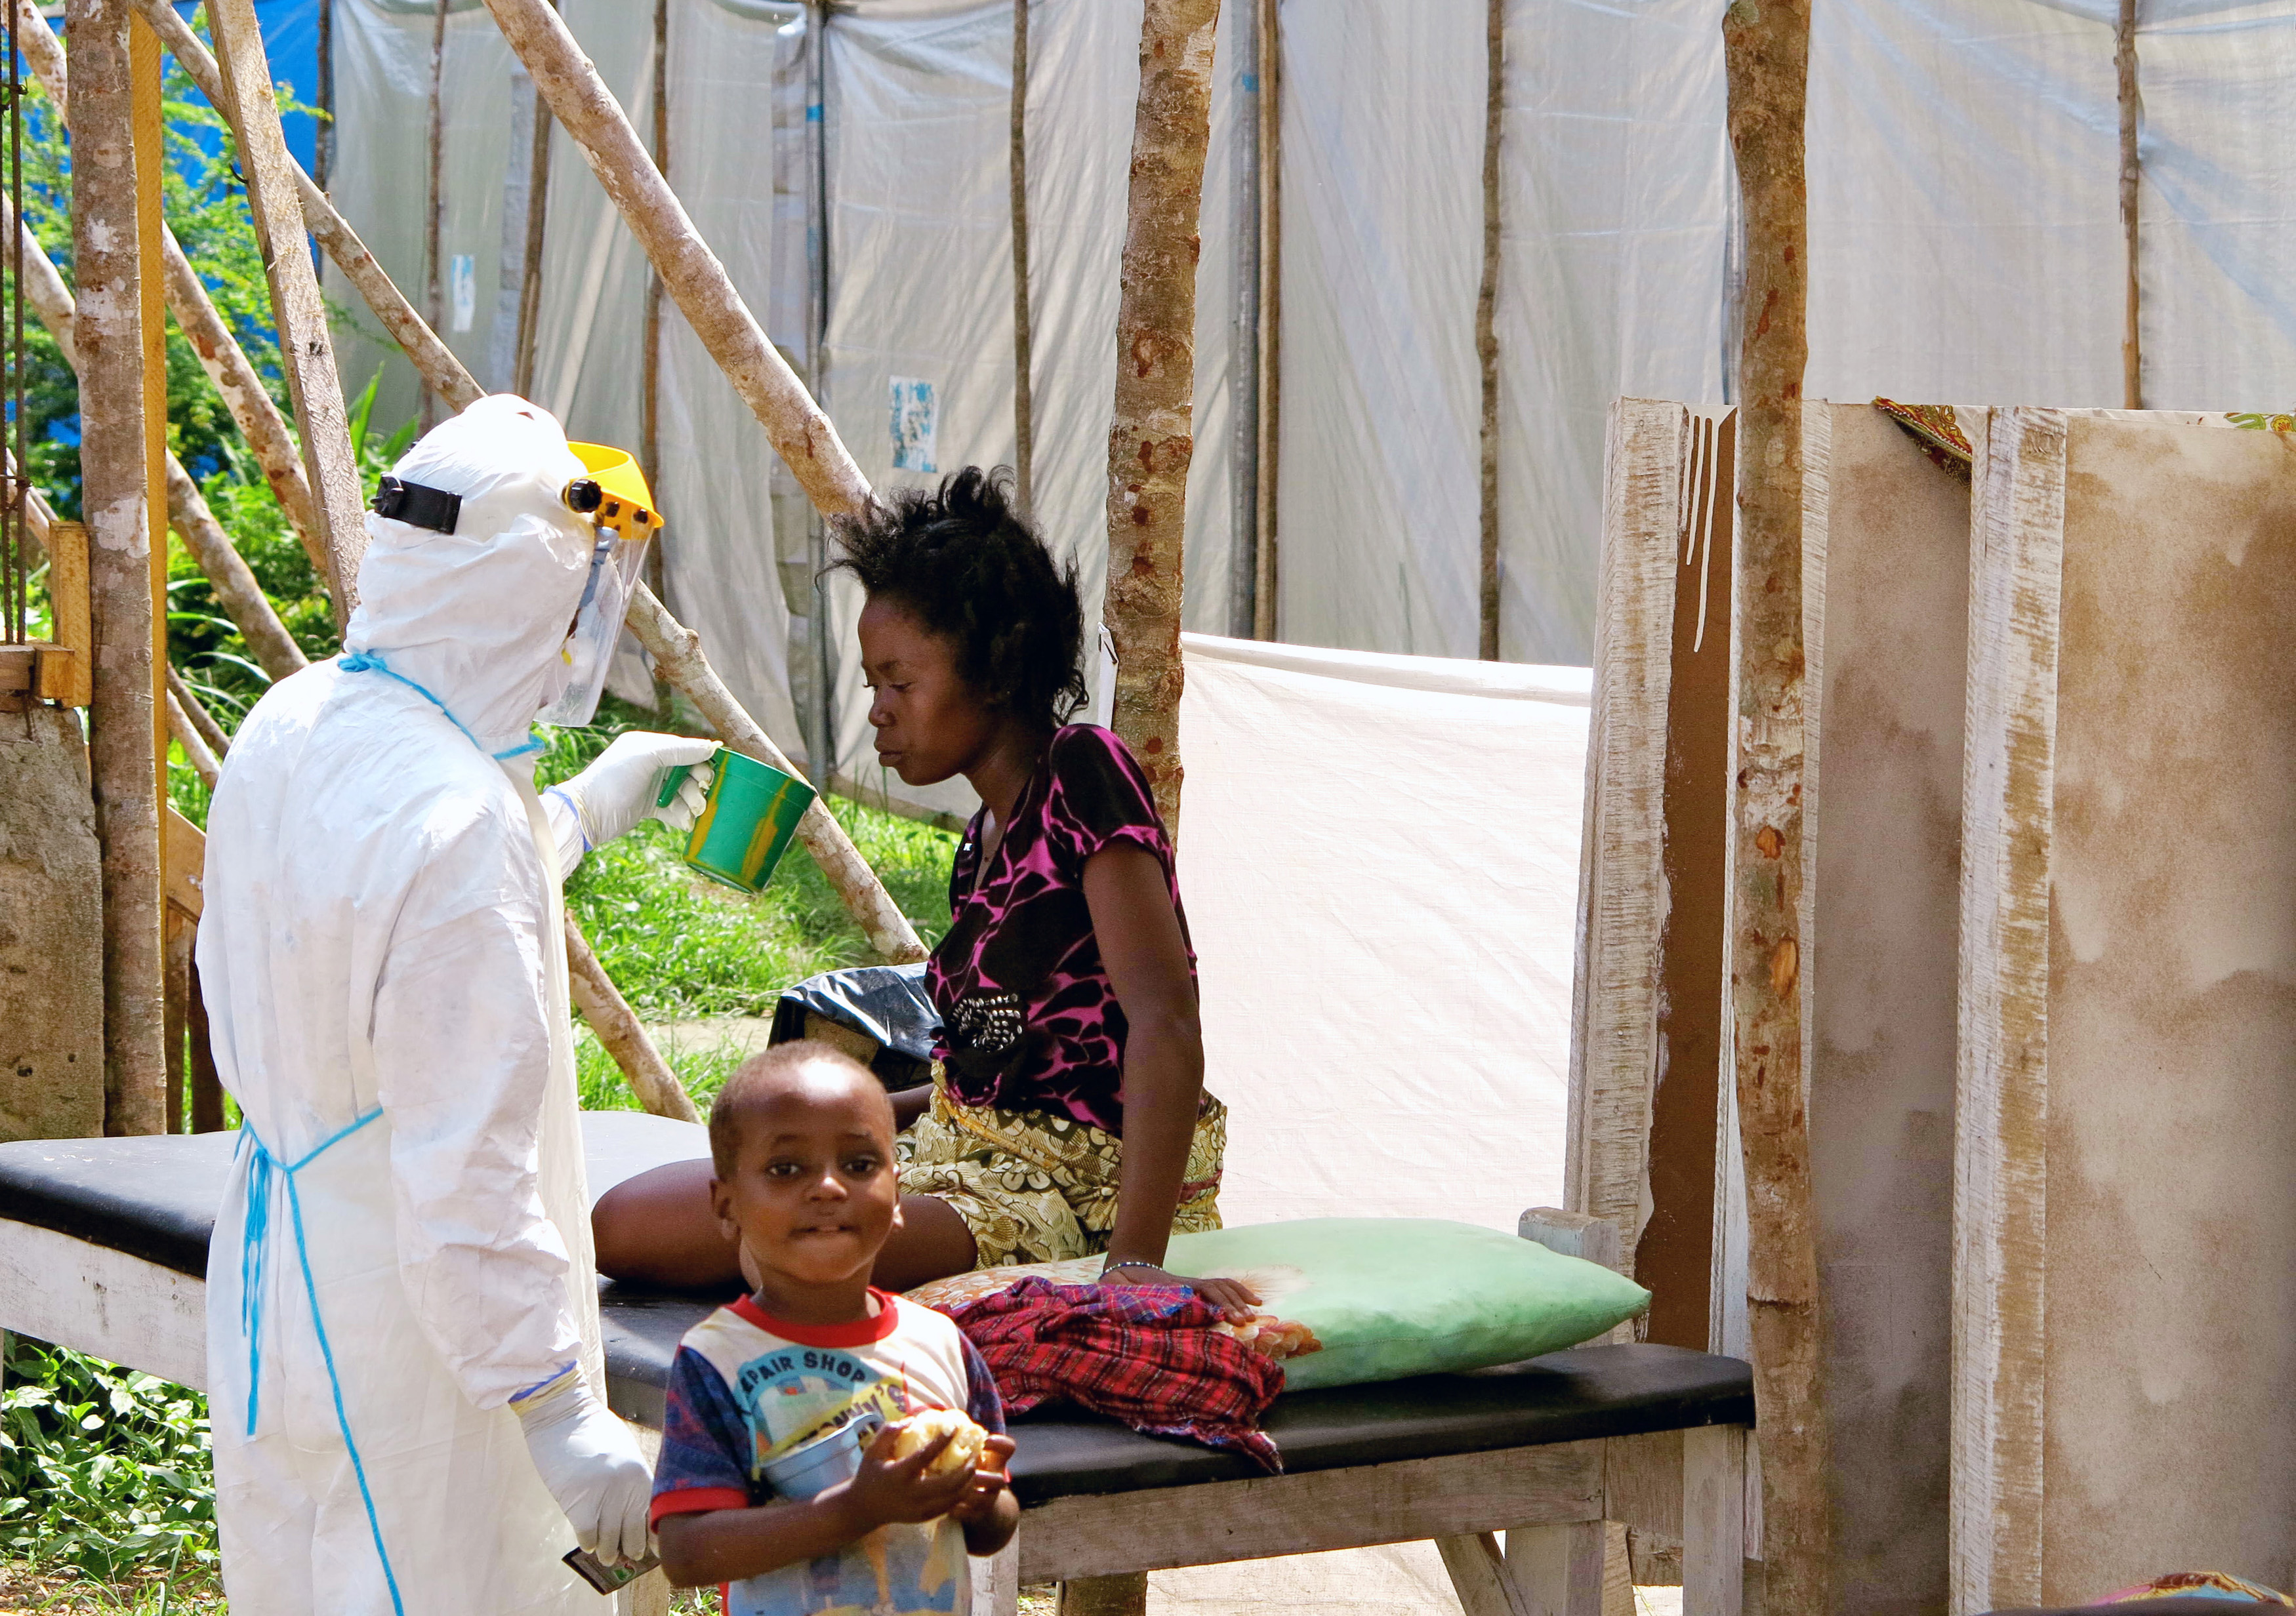 A health worker, wearing head-to-toe protective gear, offers water to a woman with Ebola at a treatment center for infected persons at Kenema Government Hospital in Kenema, Sierra Leone.